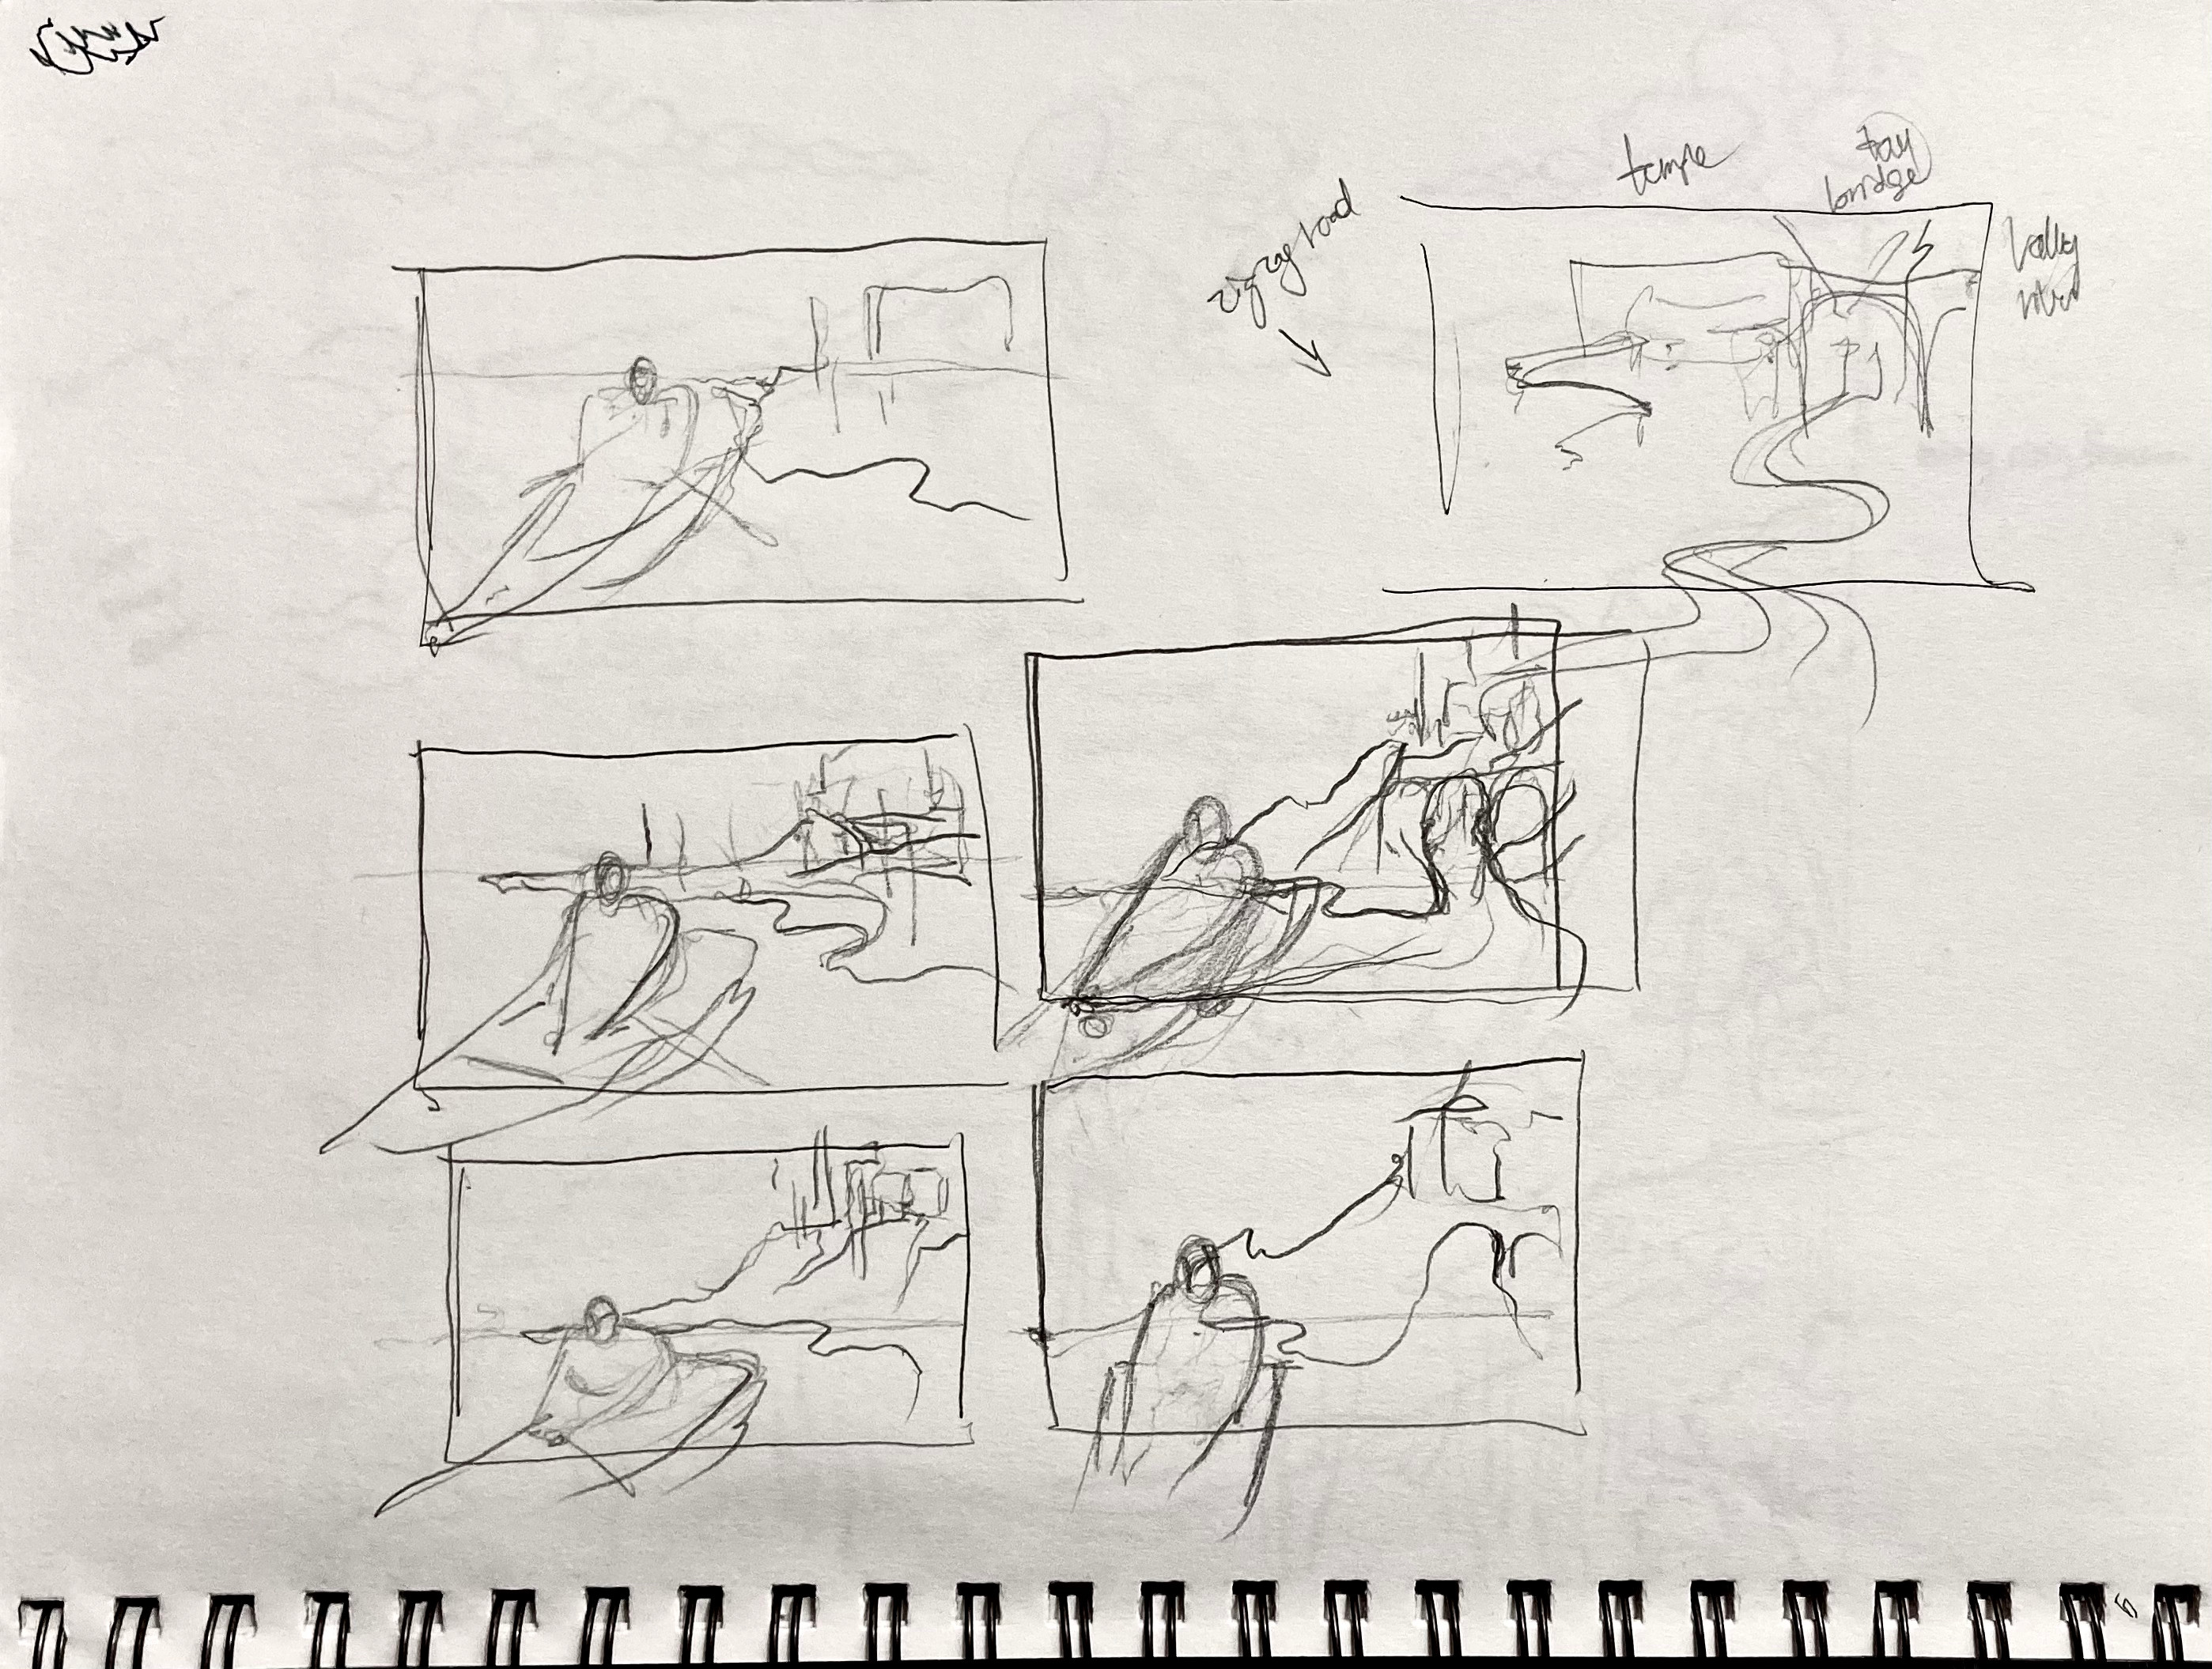 Compositional Sketch (1)